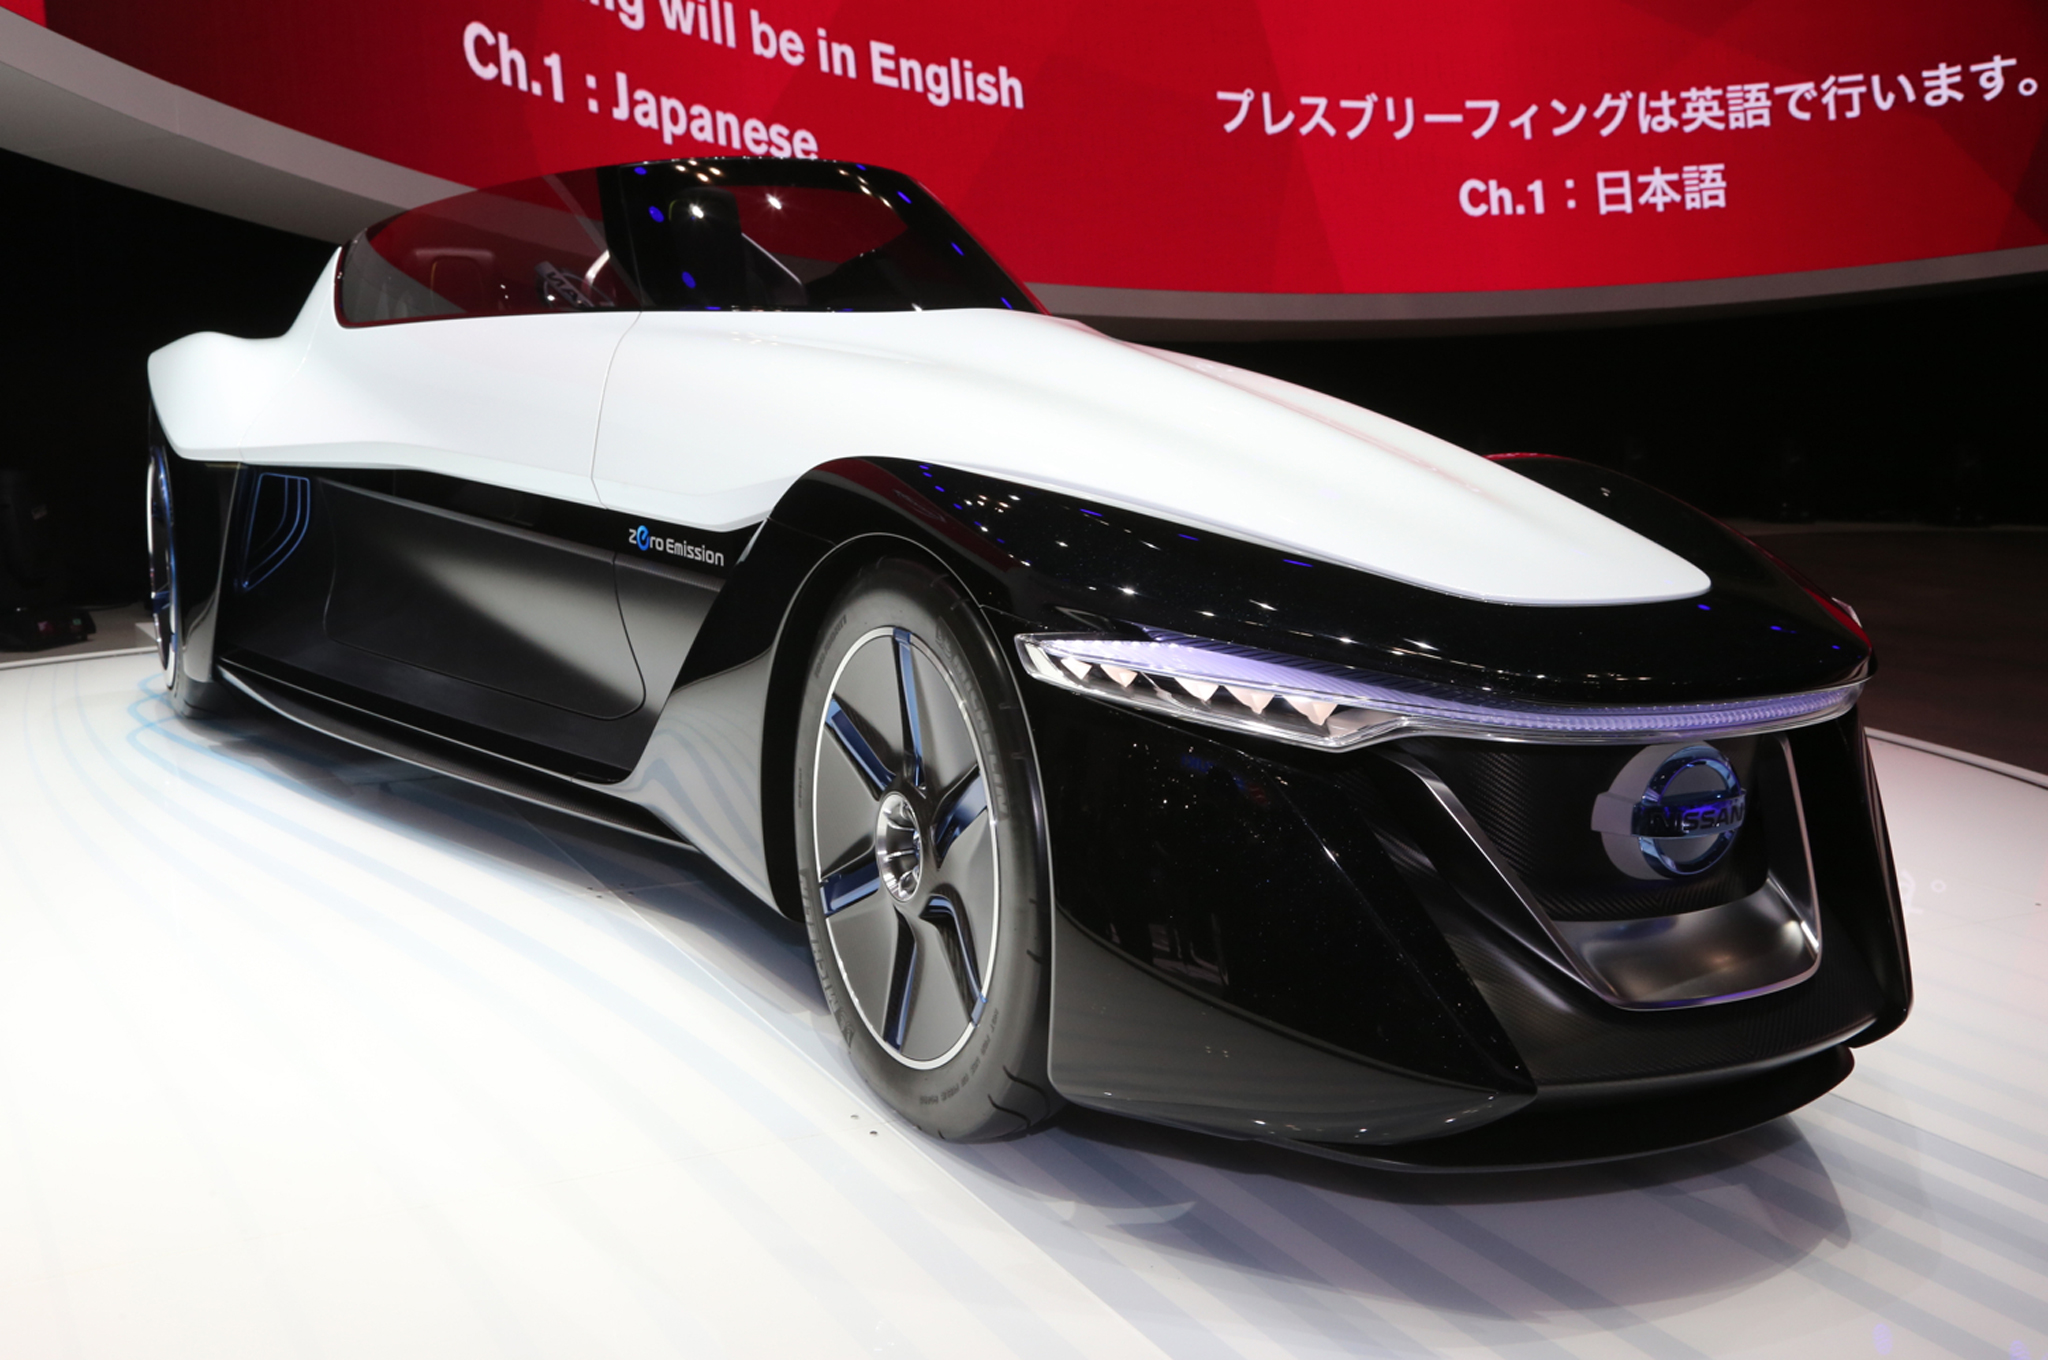 Nissan BladeGlider Concept to Smash Barriers at 2013 Tokyo Motor Show